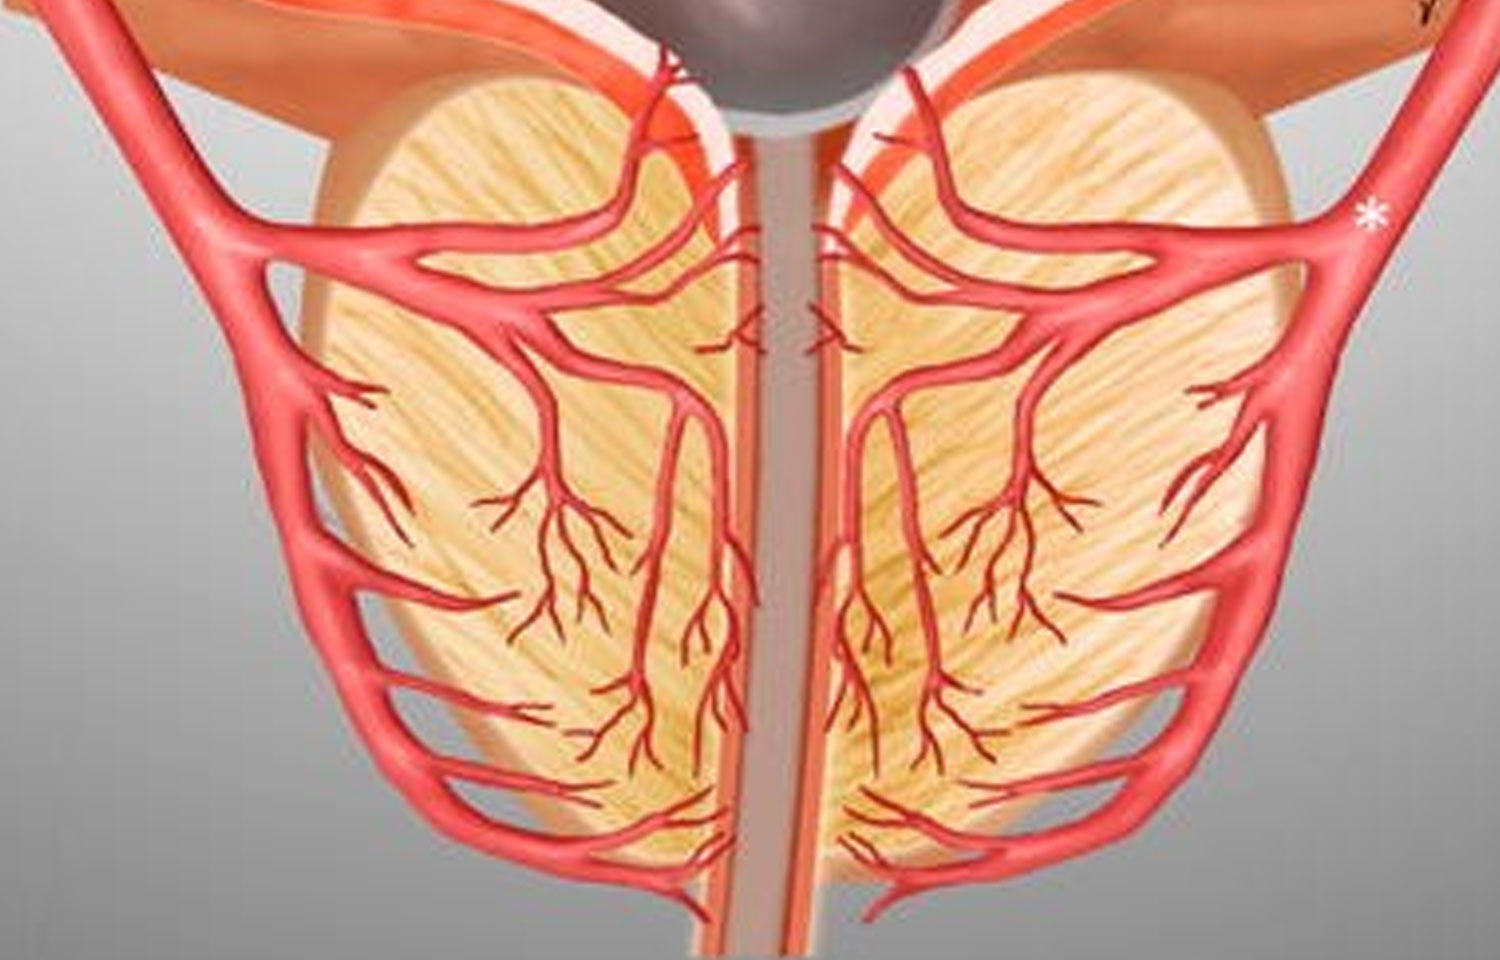 Prostatic artery embolization may do away with catheterization need in AUR  patients: Study